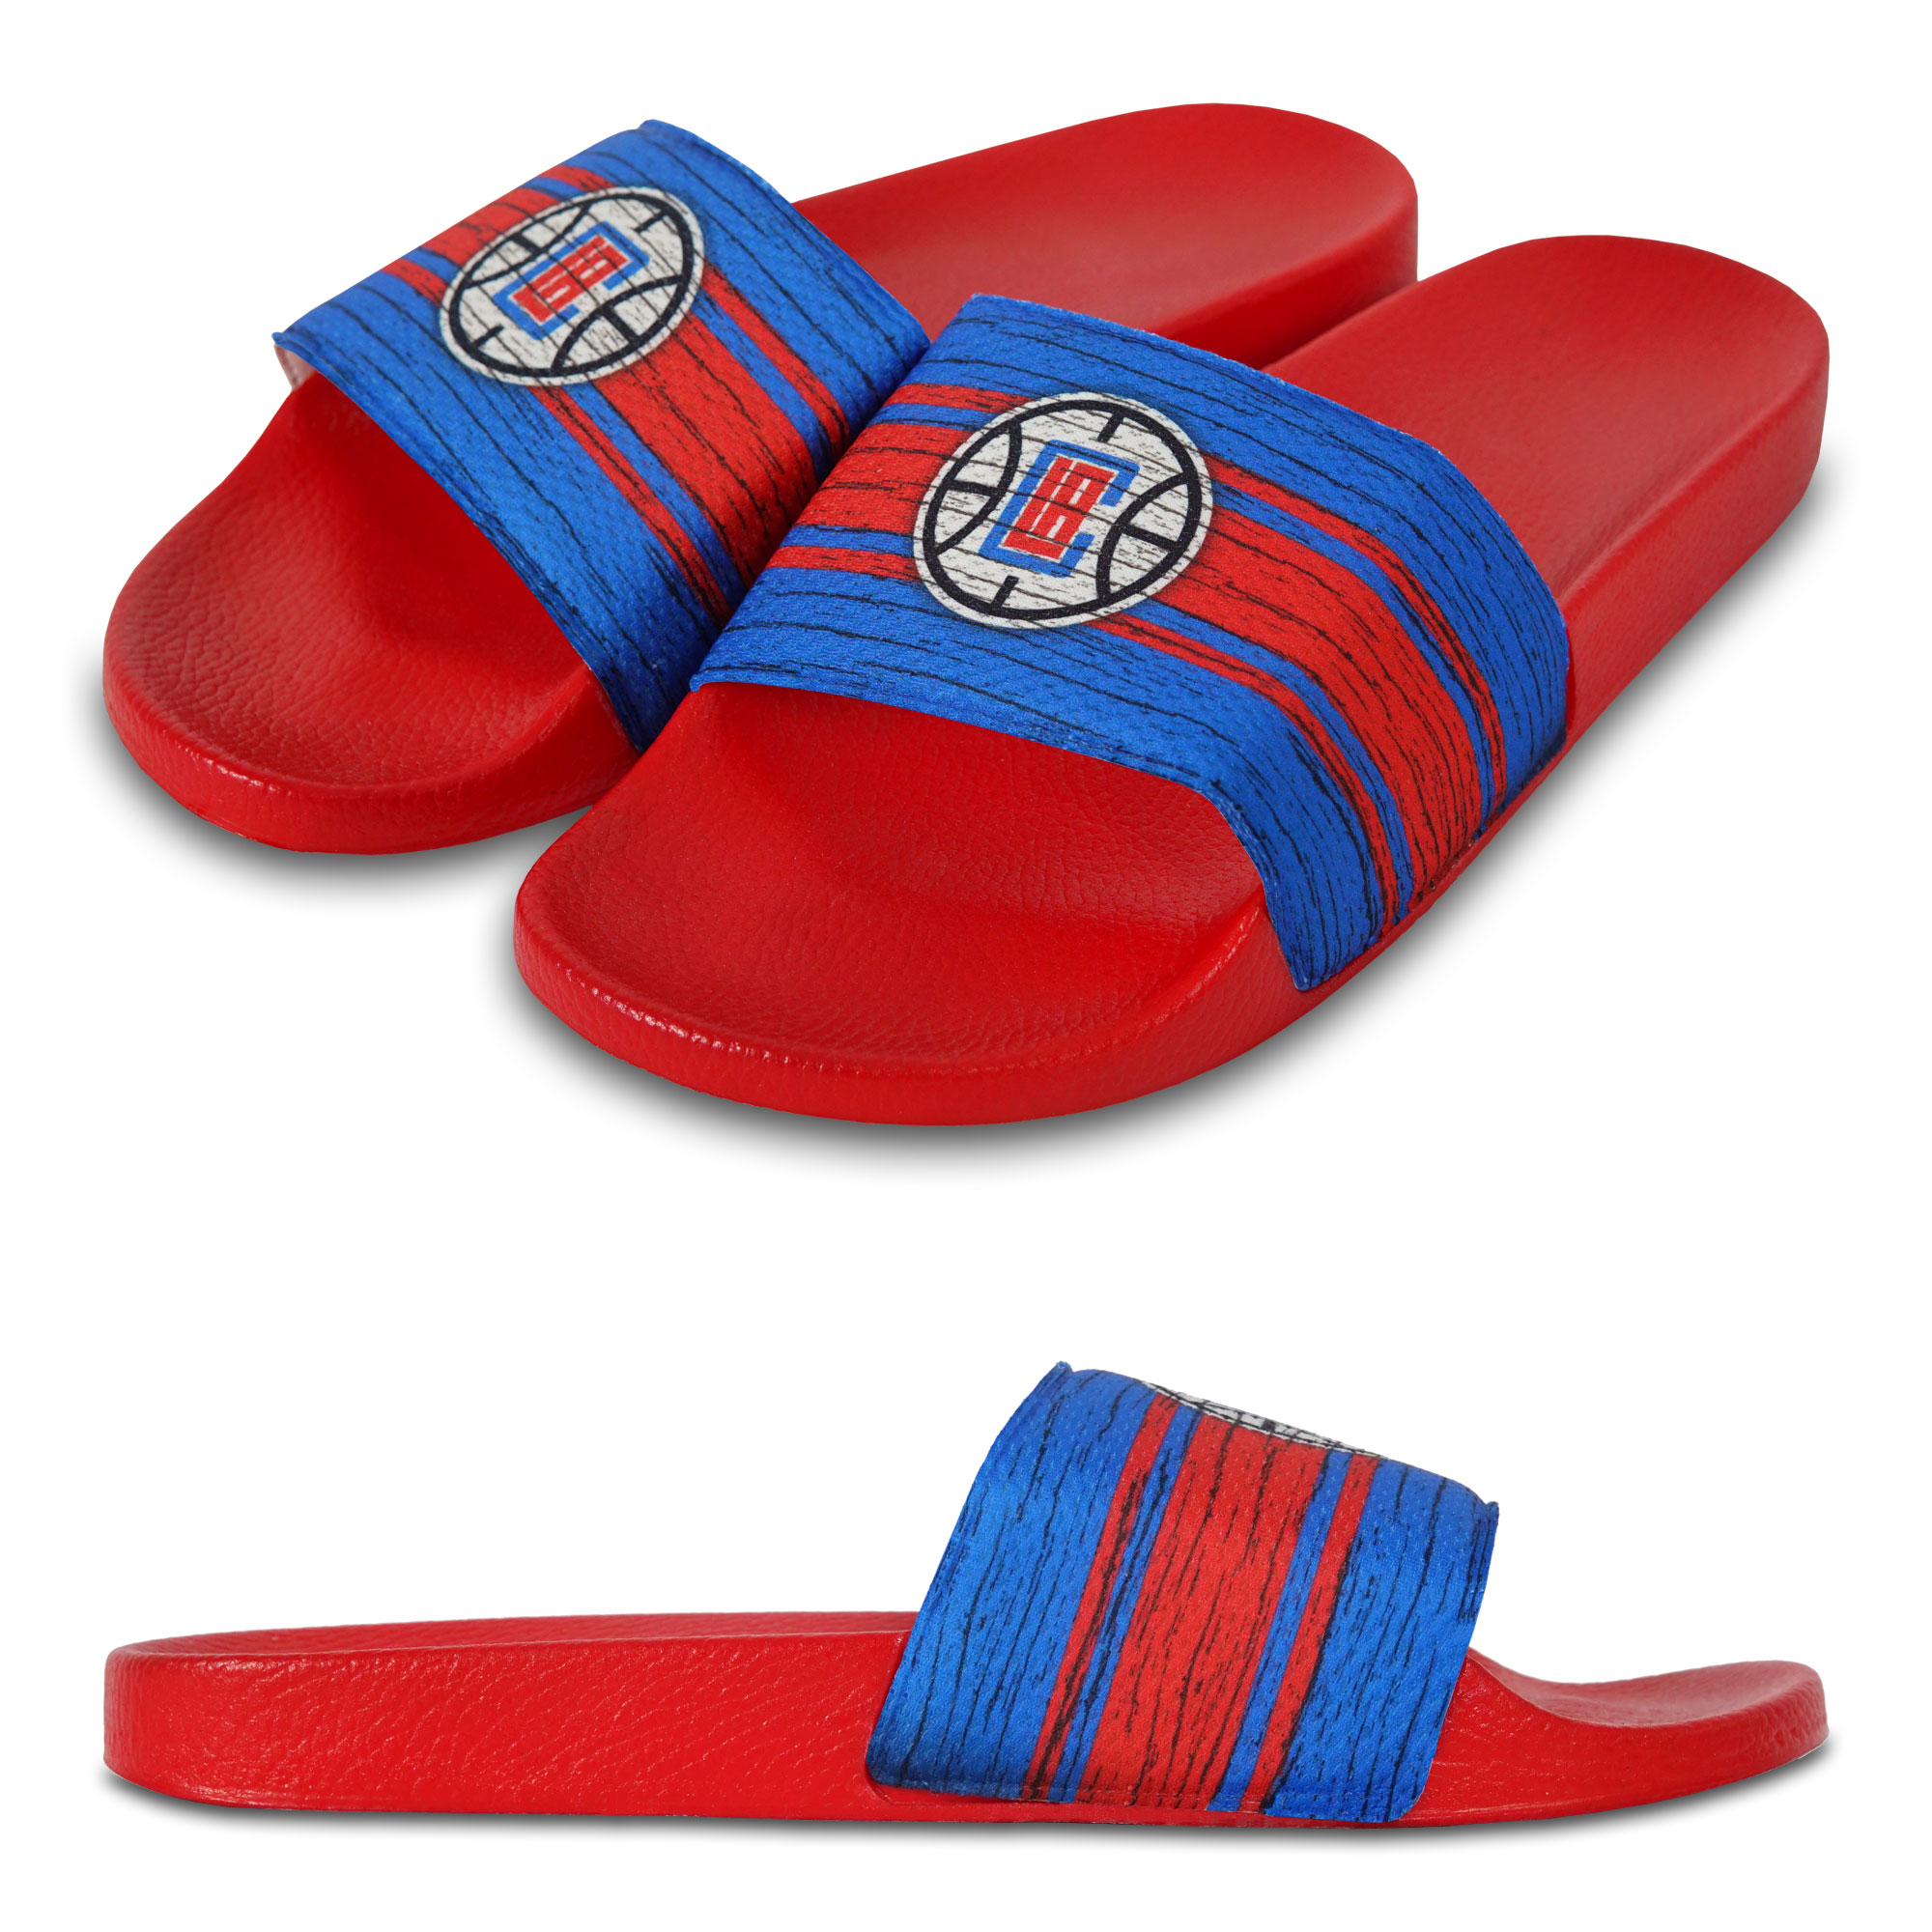 L.A Clippers Terlik (TRLK-RED-NP-CLİPPERS)